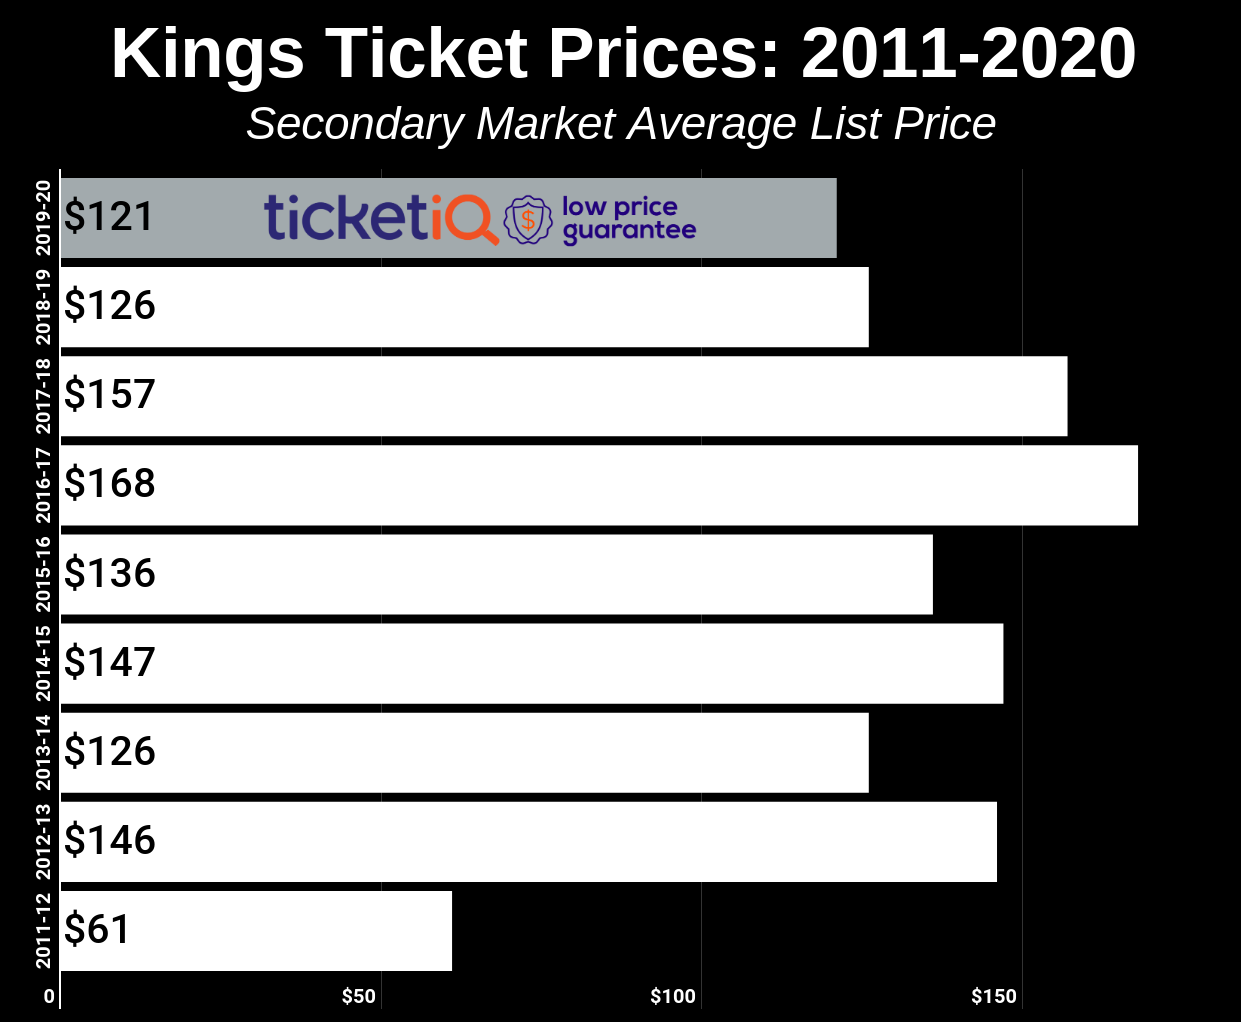 Kings Ticket Prices